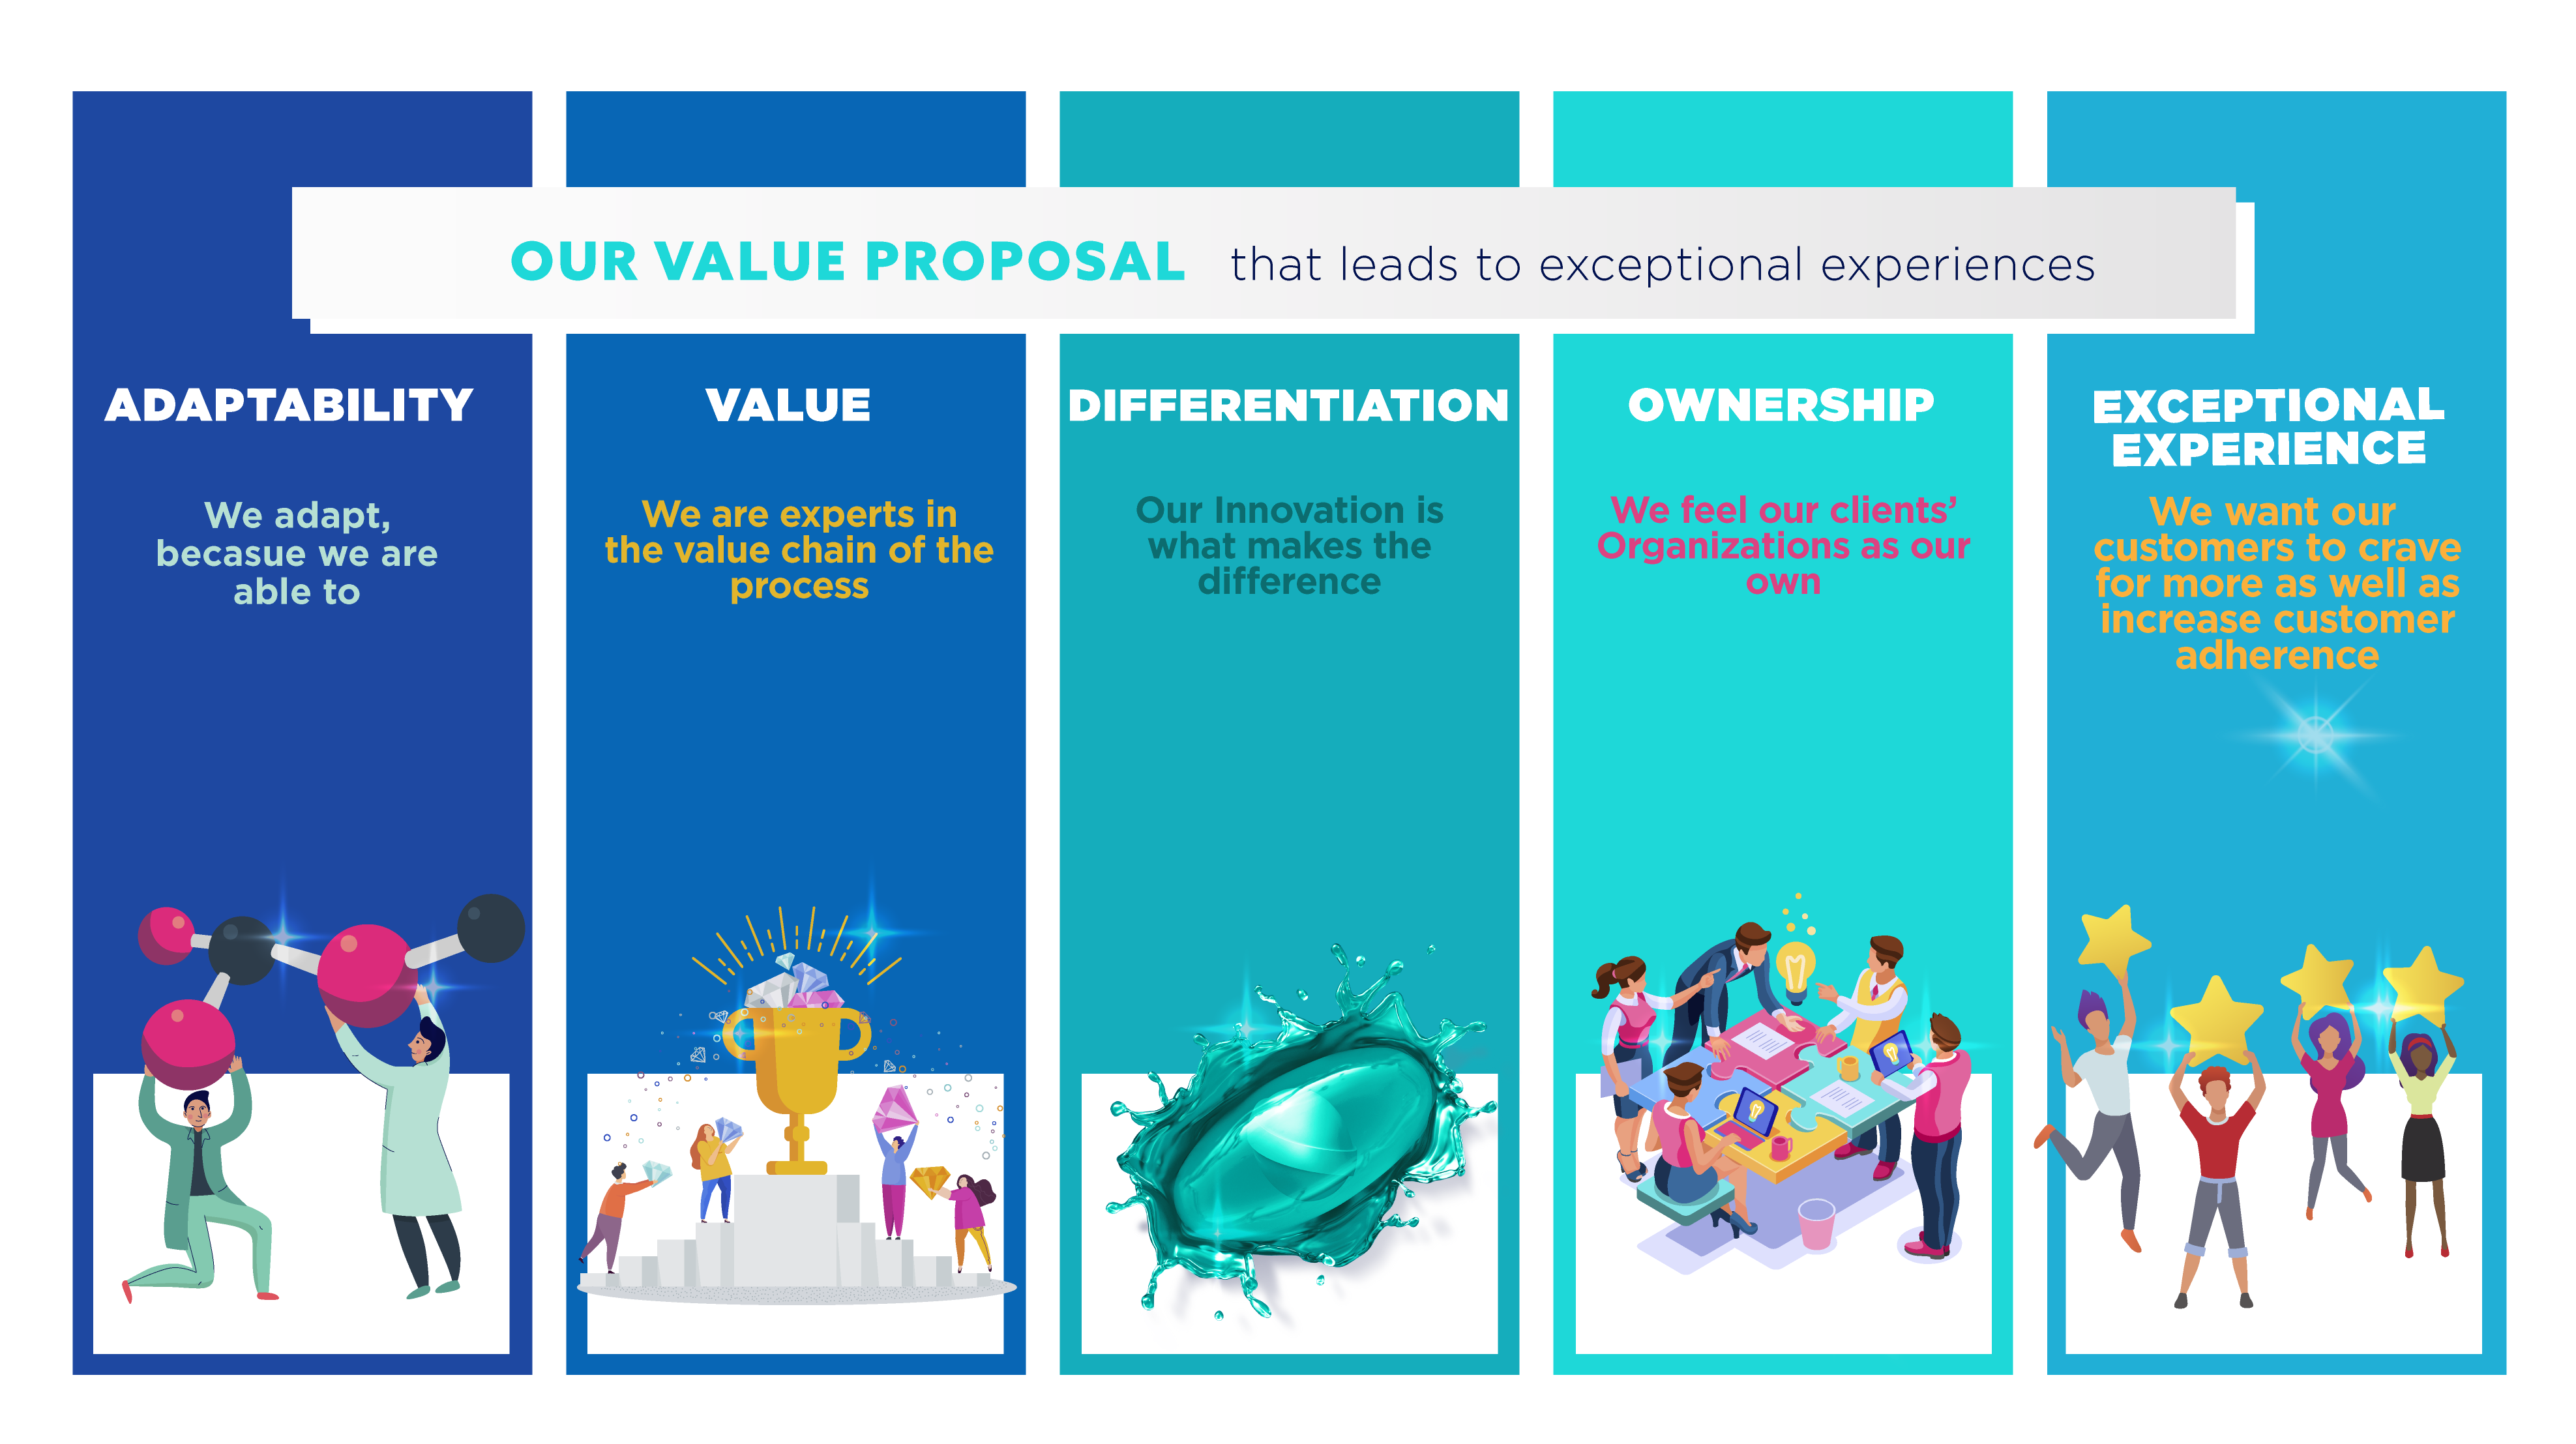 Our Value Proposal